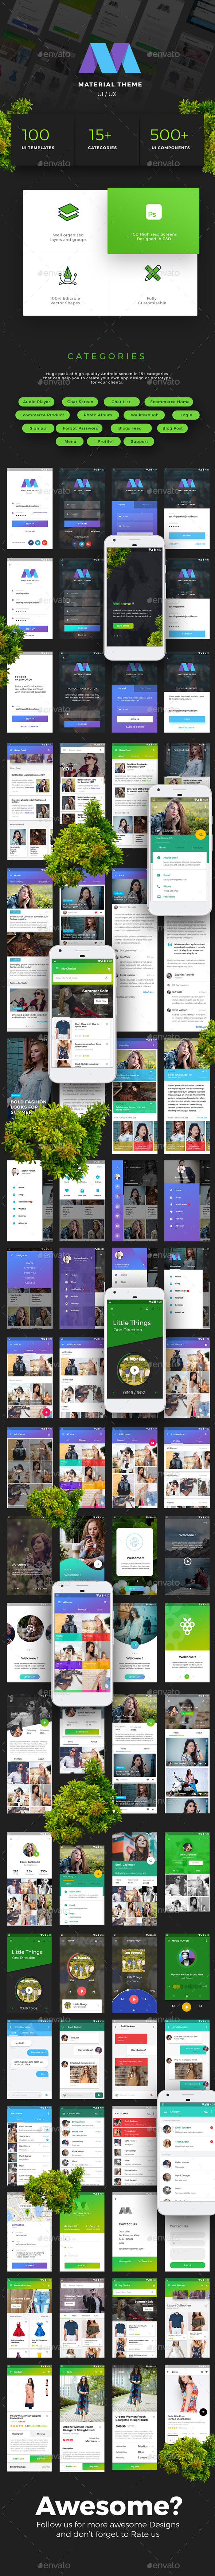 Material Design Theme UX/UI Kit  by Opus Labs - User Interfaces Web Elements